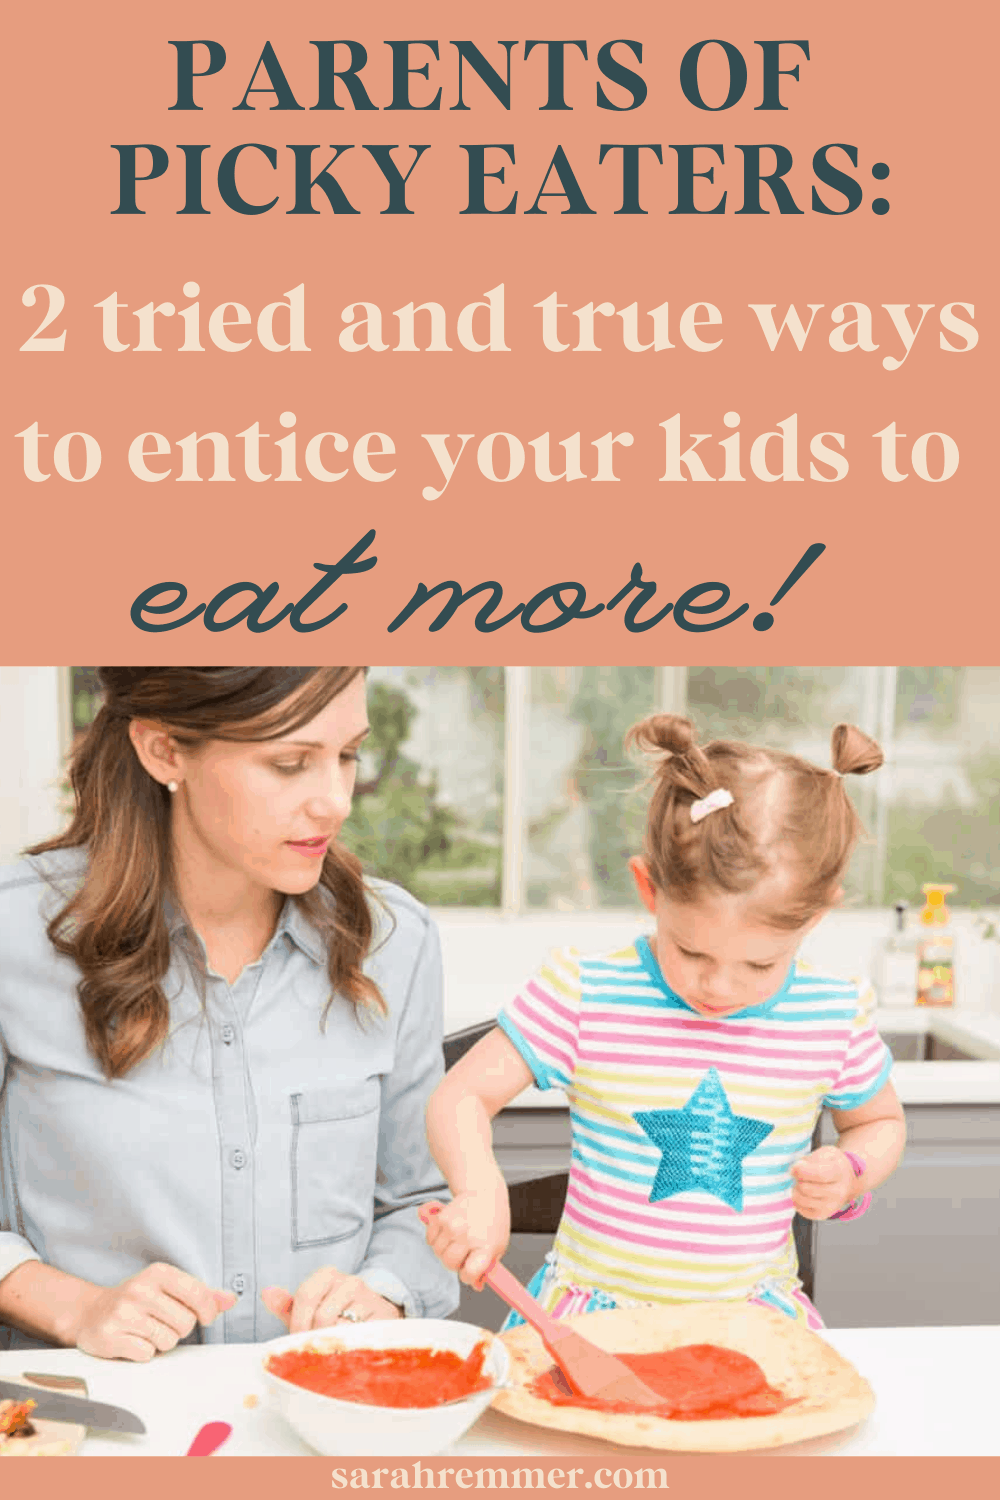 Feeding kids is a tough gig! A meal that is happily gobbled up one day could be completely rejected the next! For all parents of picky eaters, here are two tried and true ways to entice your kids to eat more.